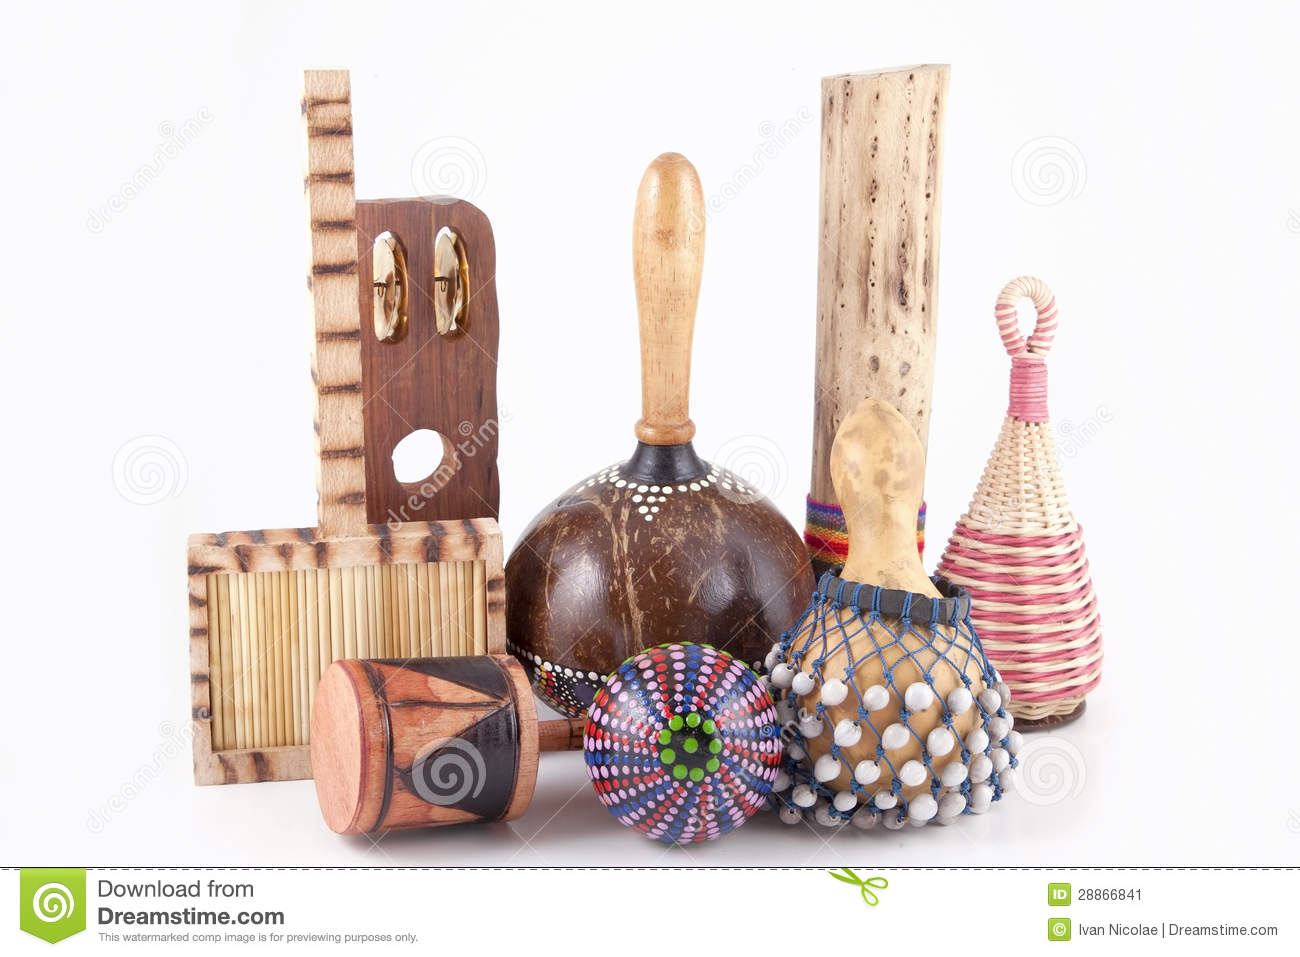 African Musical Instruments Stock Image - Image: 28866841